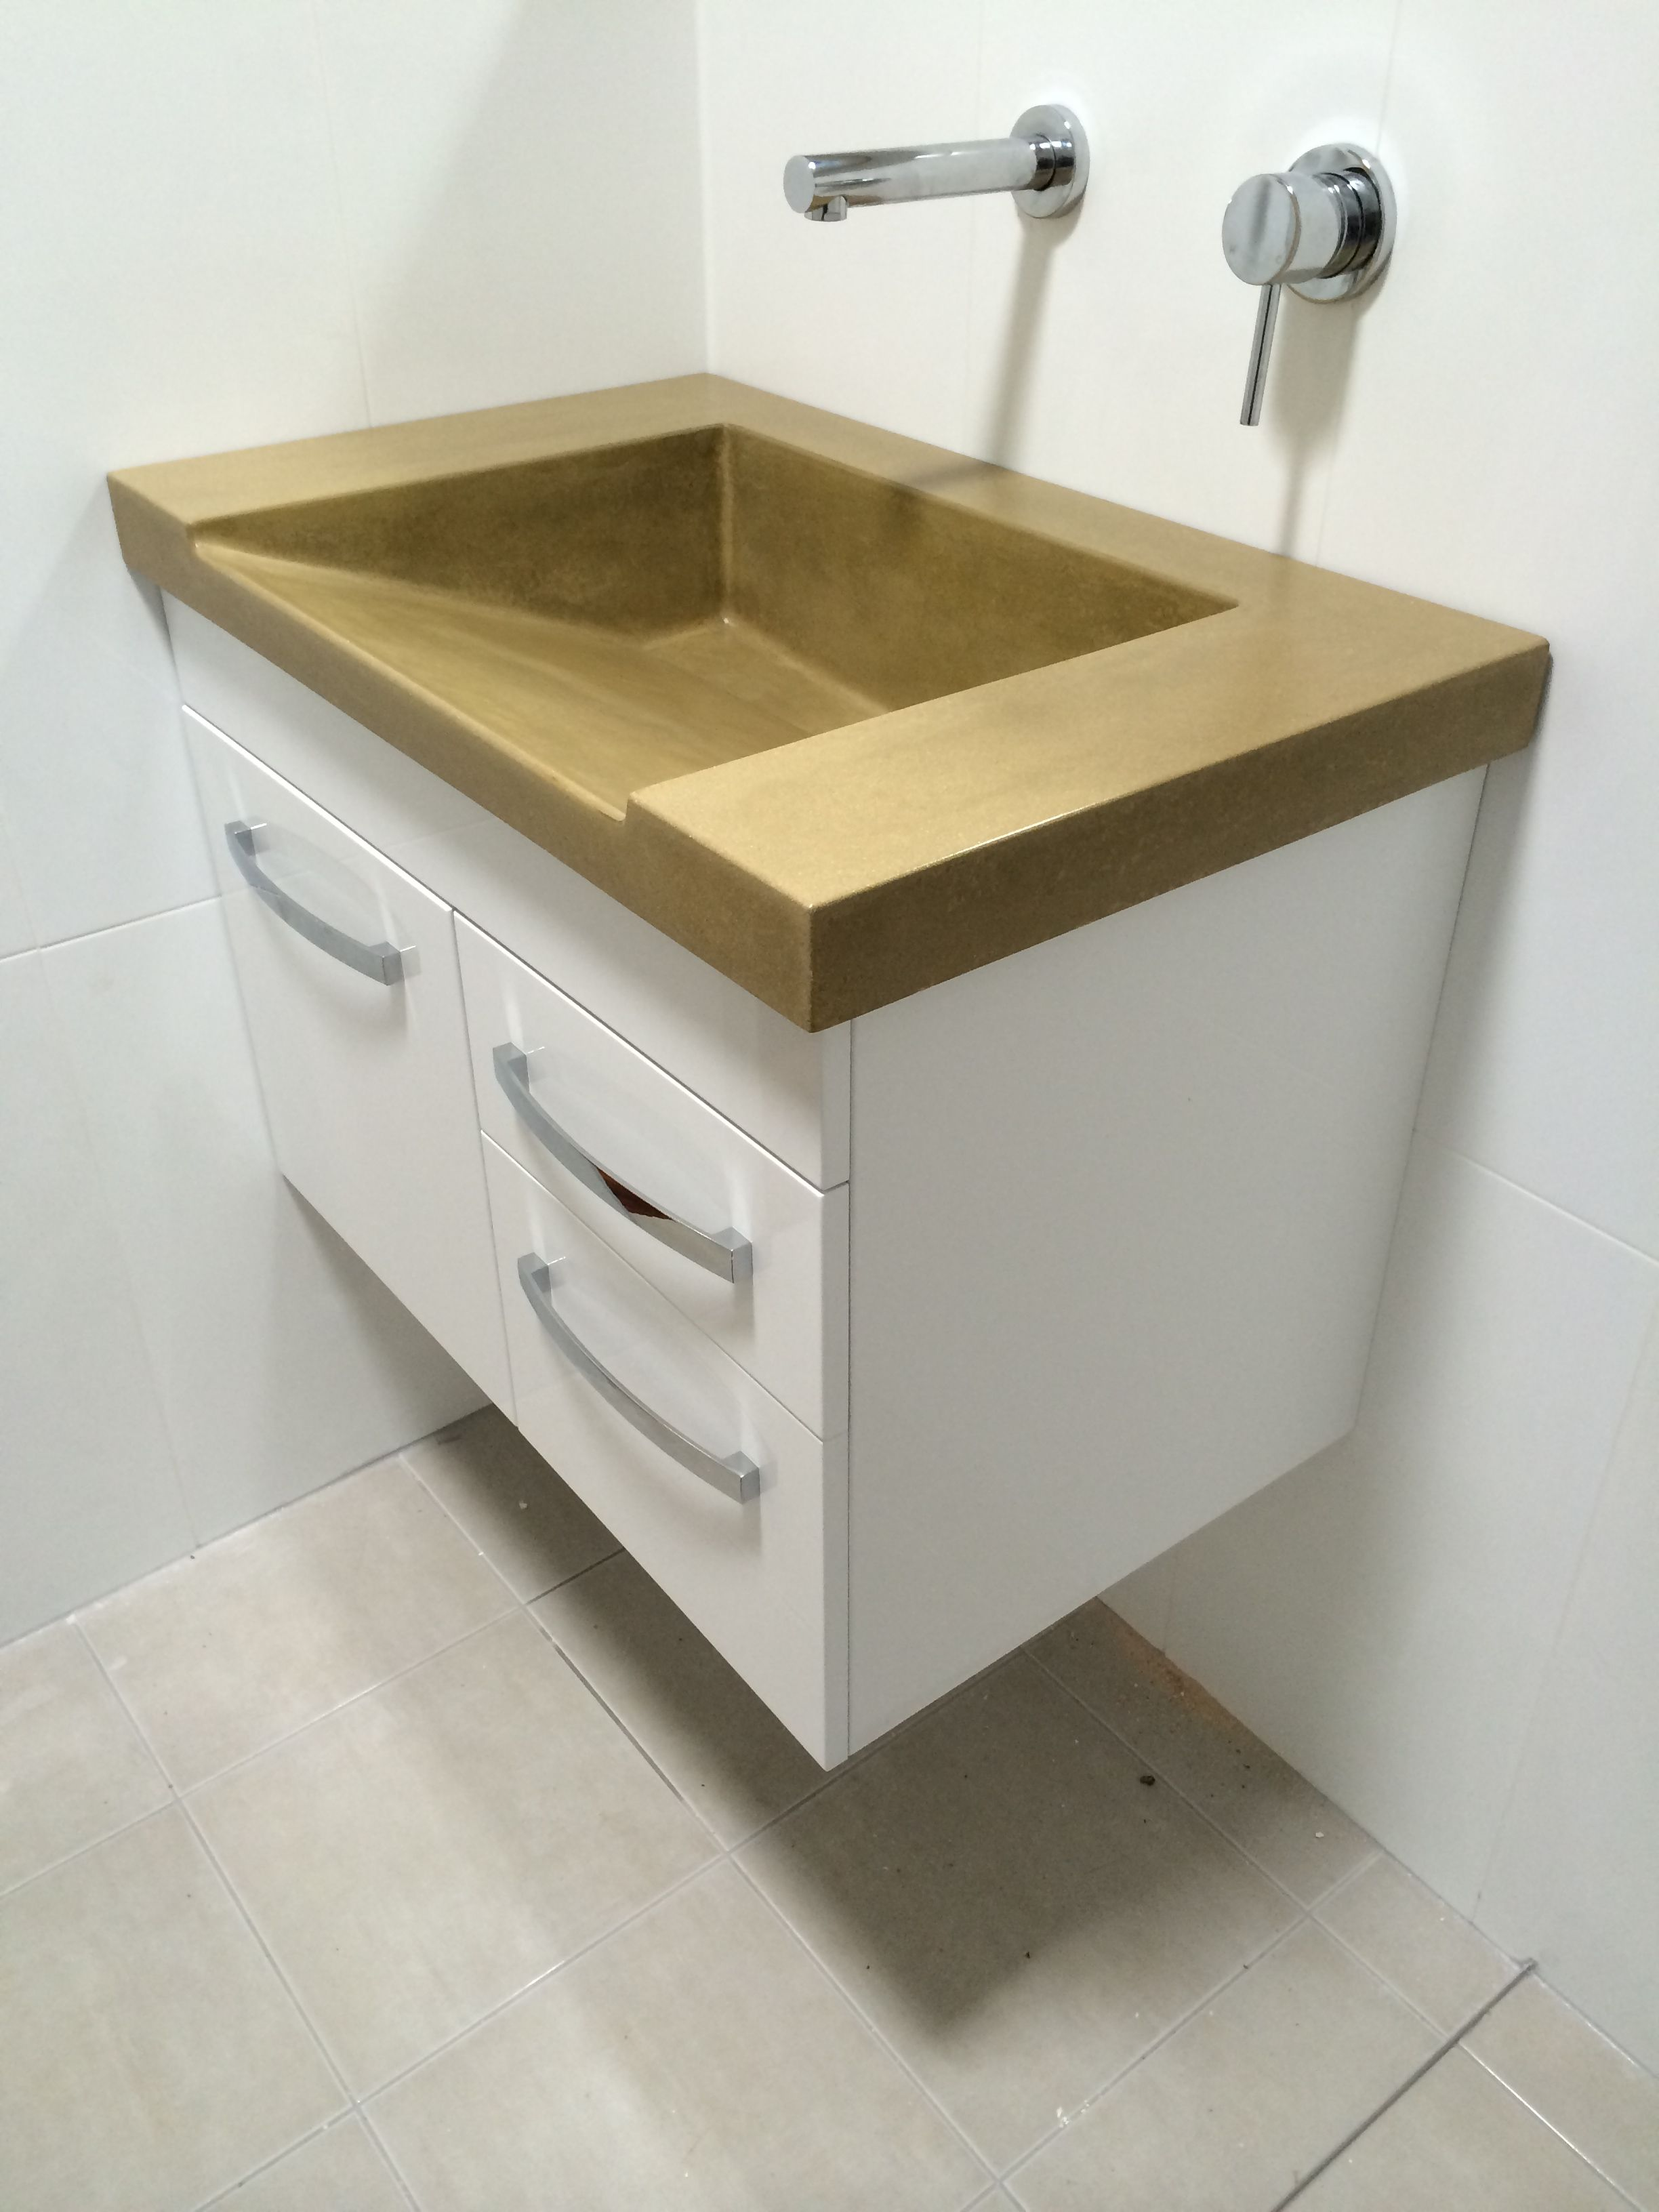 by a countertop created customs in drop sink dark countertops with brown white pin bathroom ceramic concrete